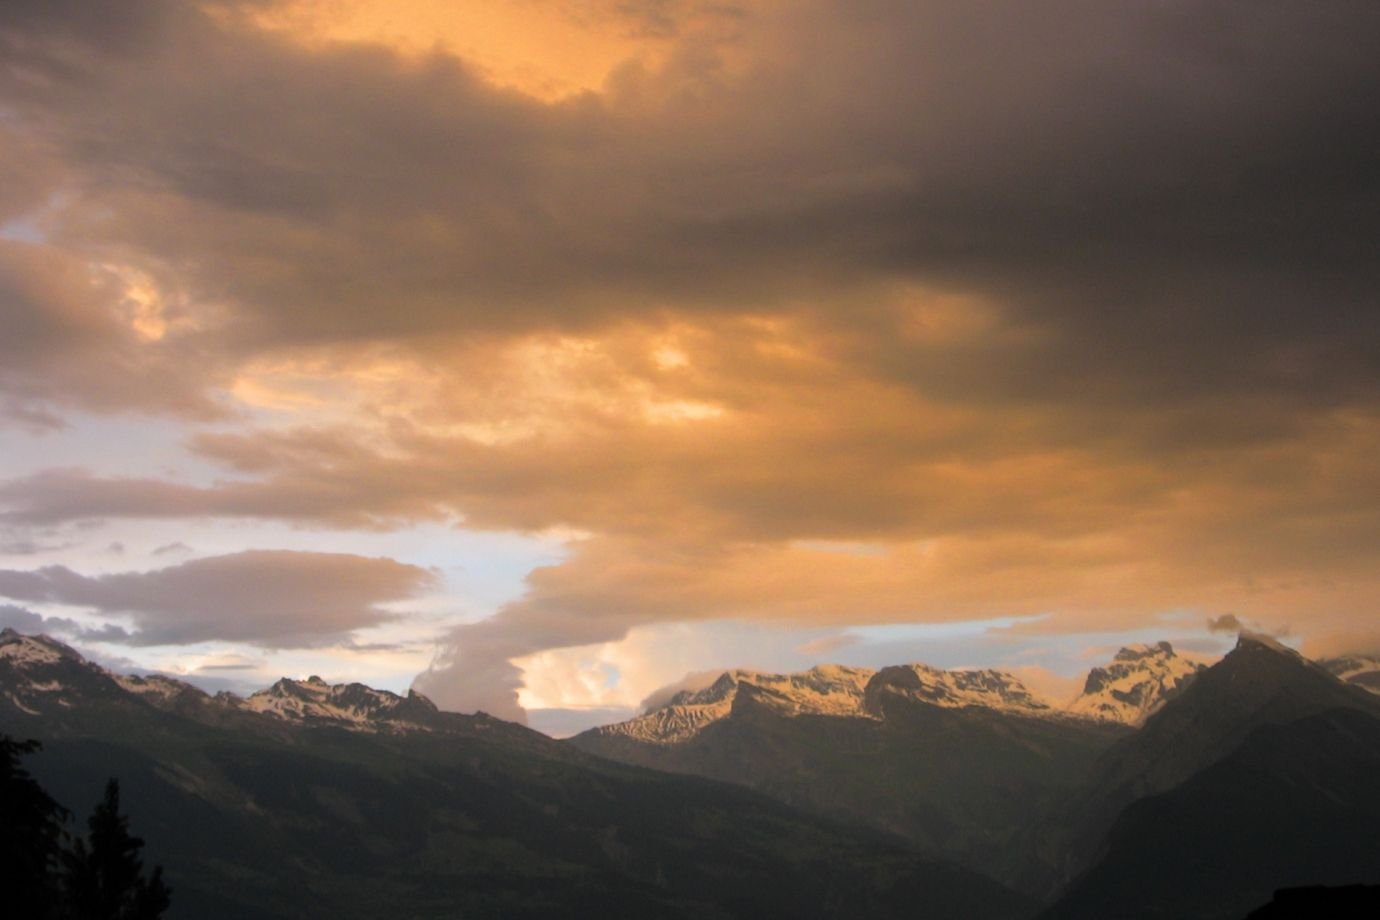 Stormy atmosphere and clouds form the picture of the mountains